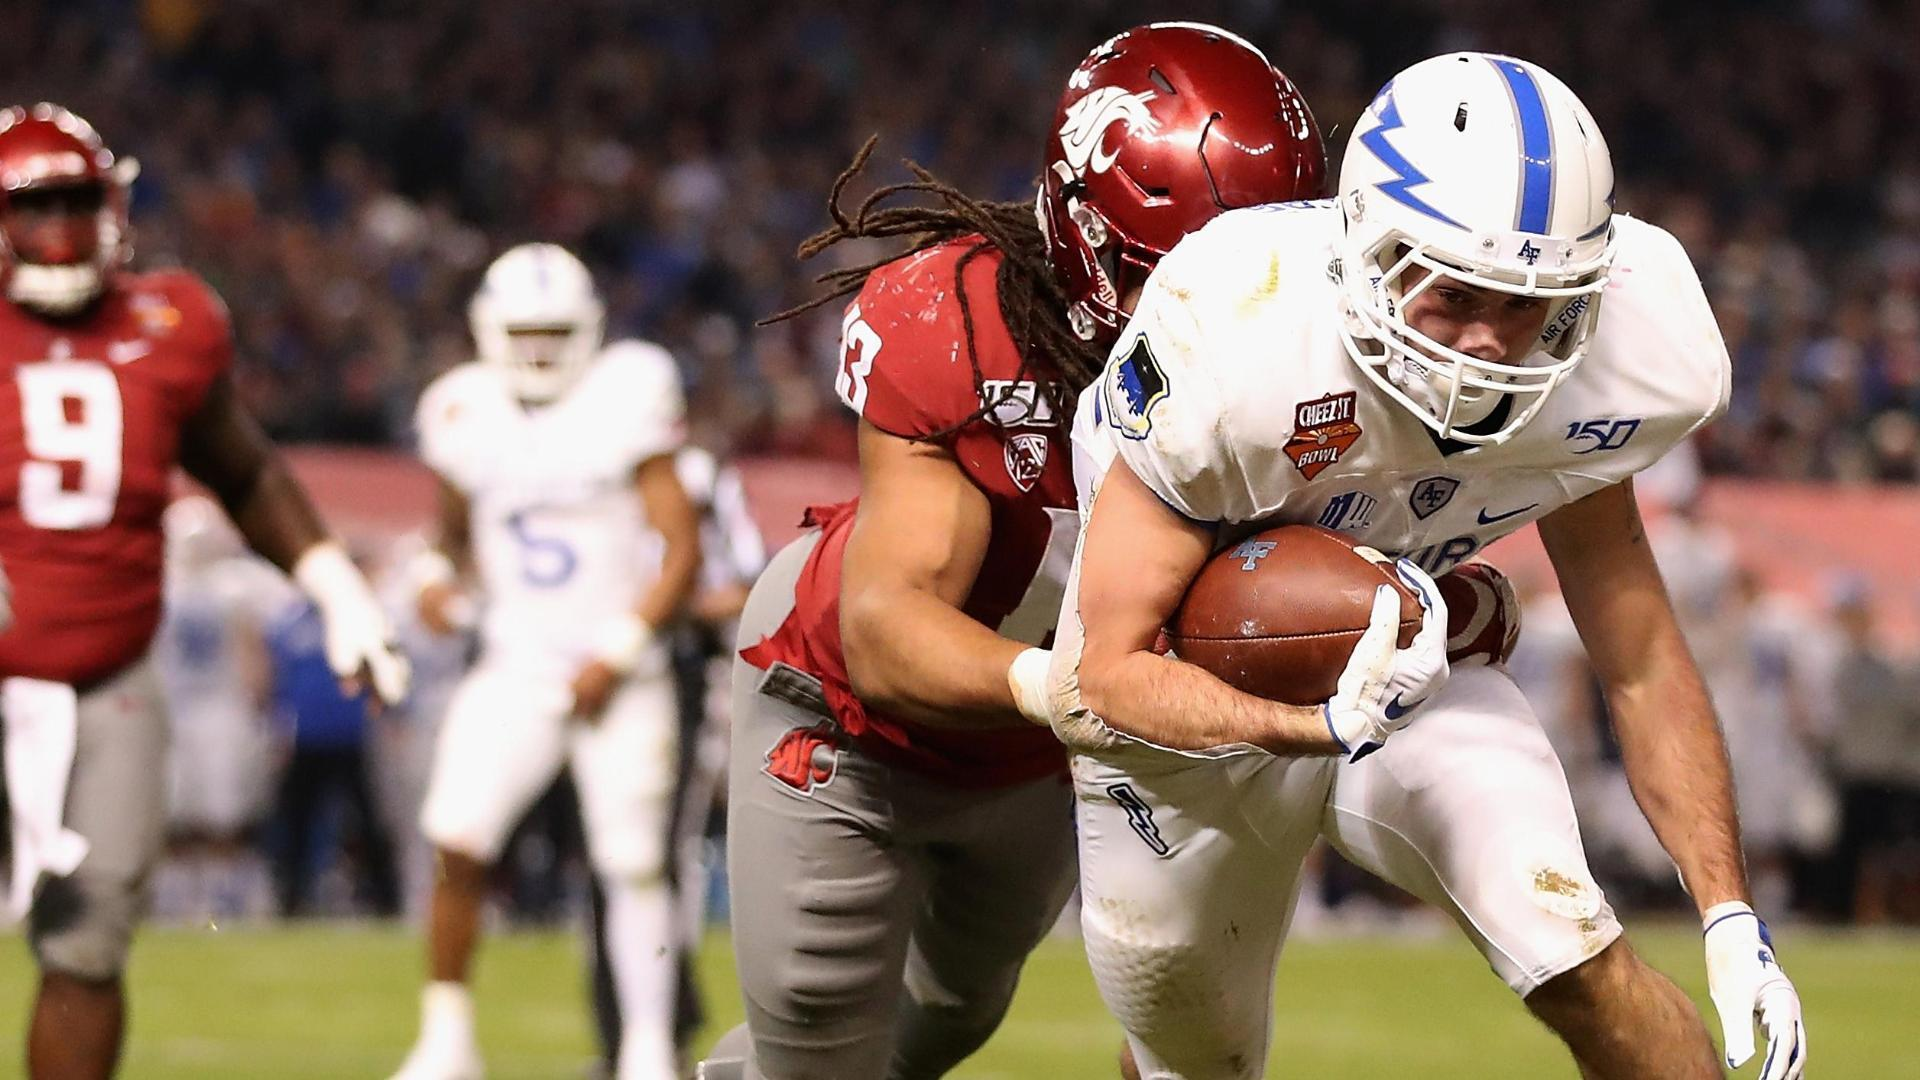 Air Force's Remsberg takes huge hit on diving TD